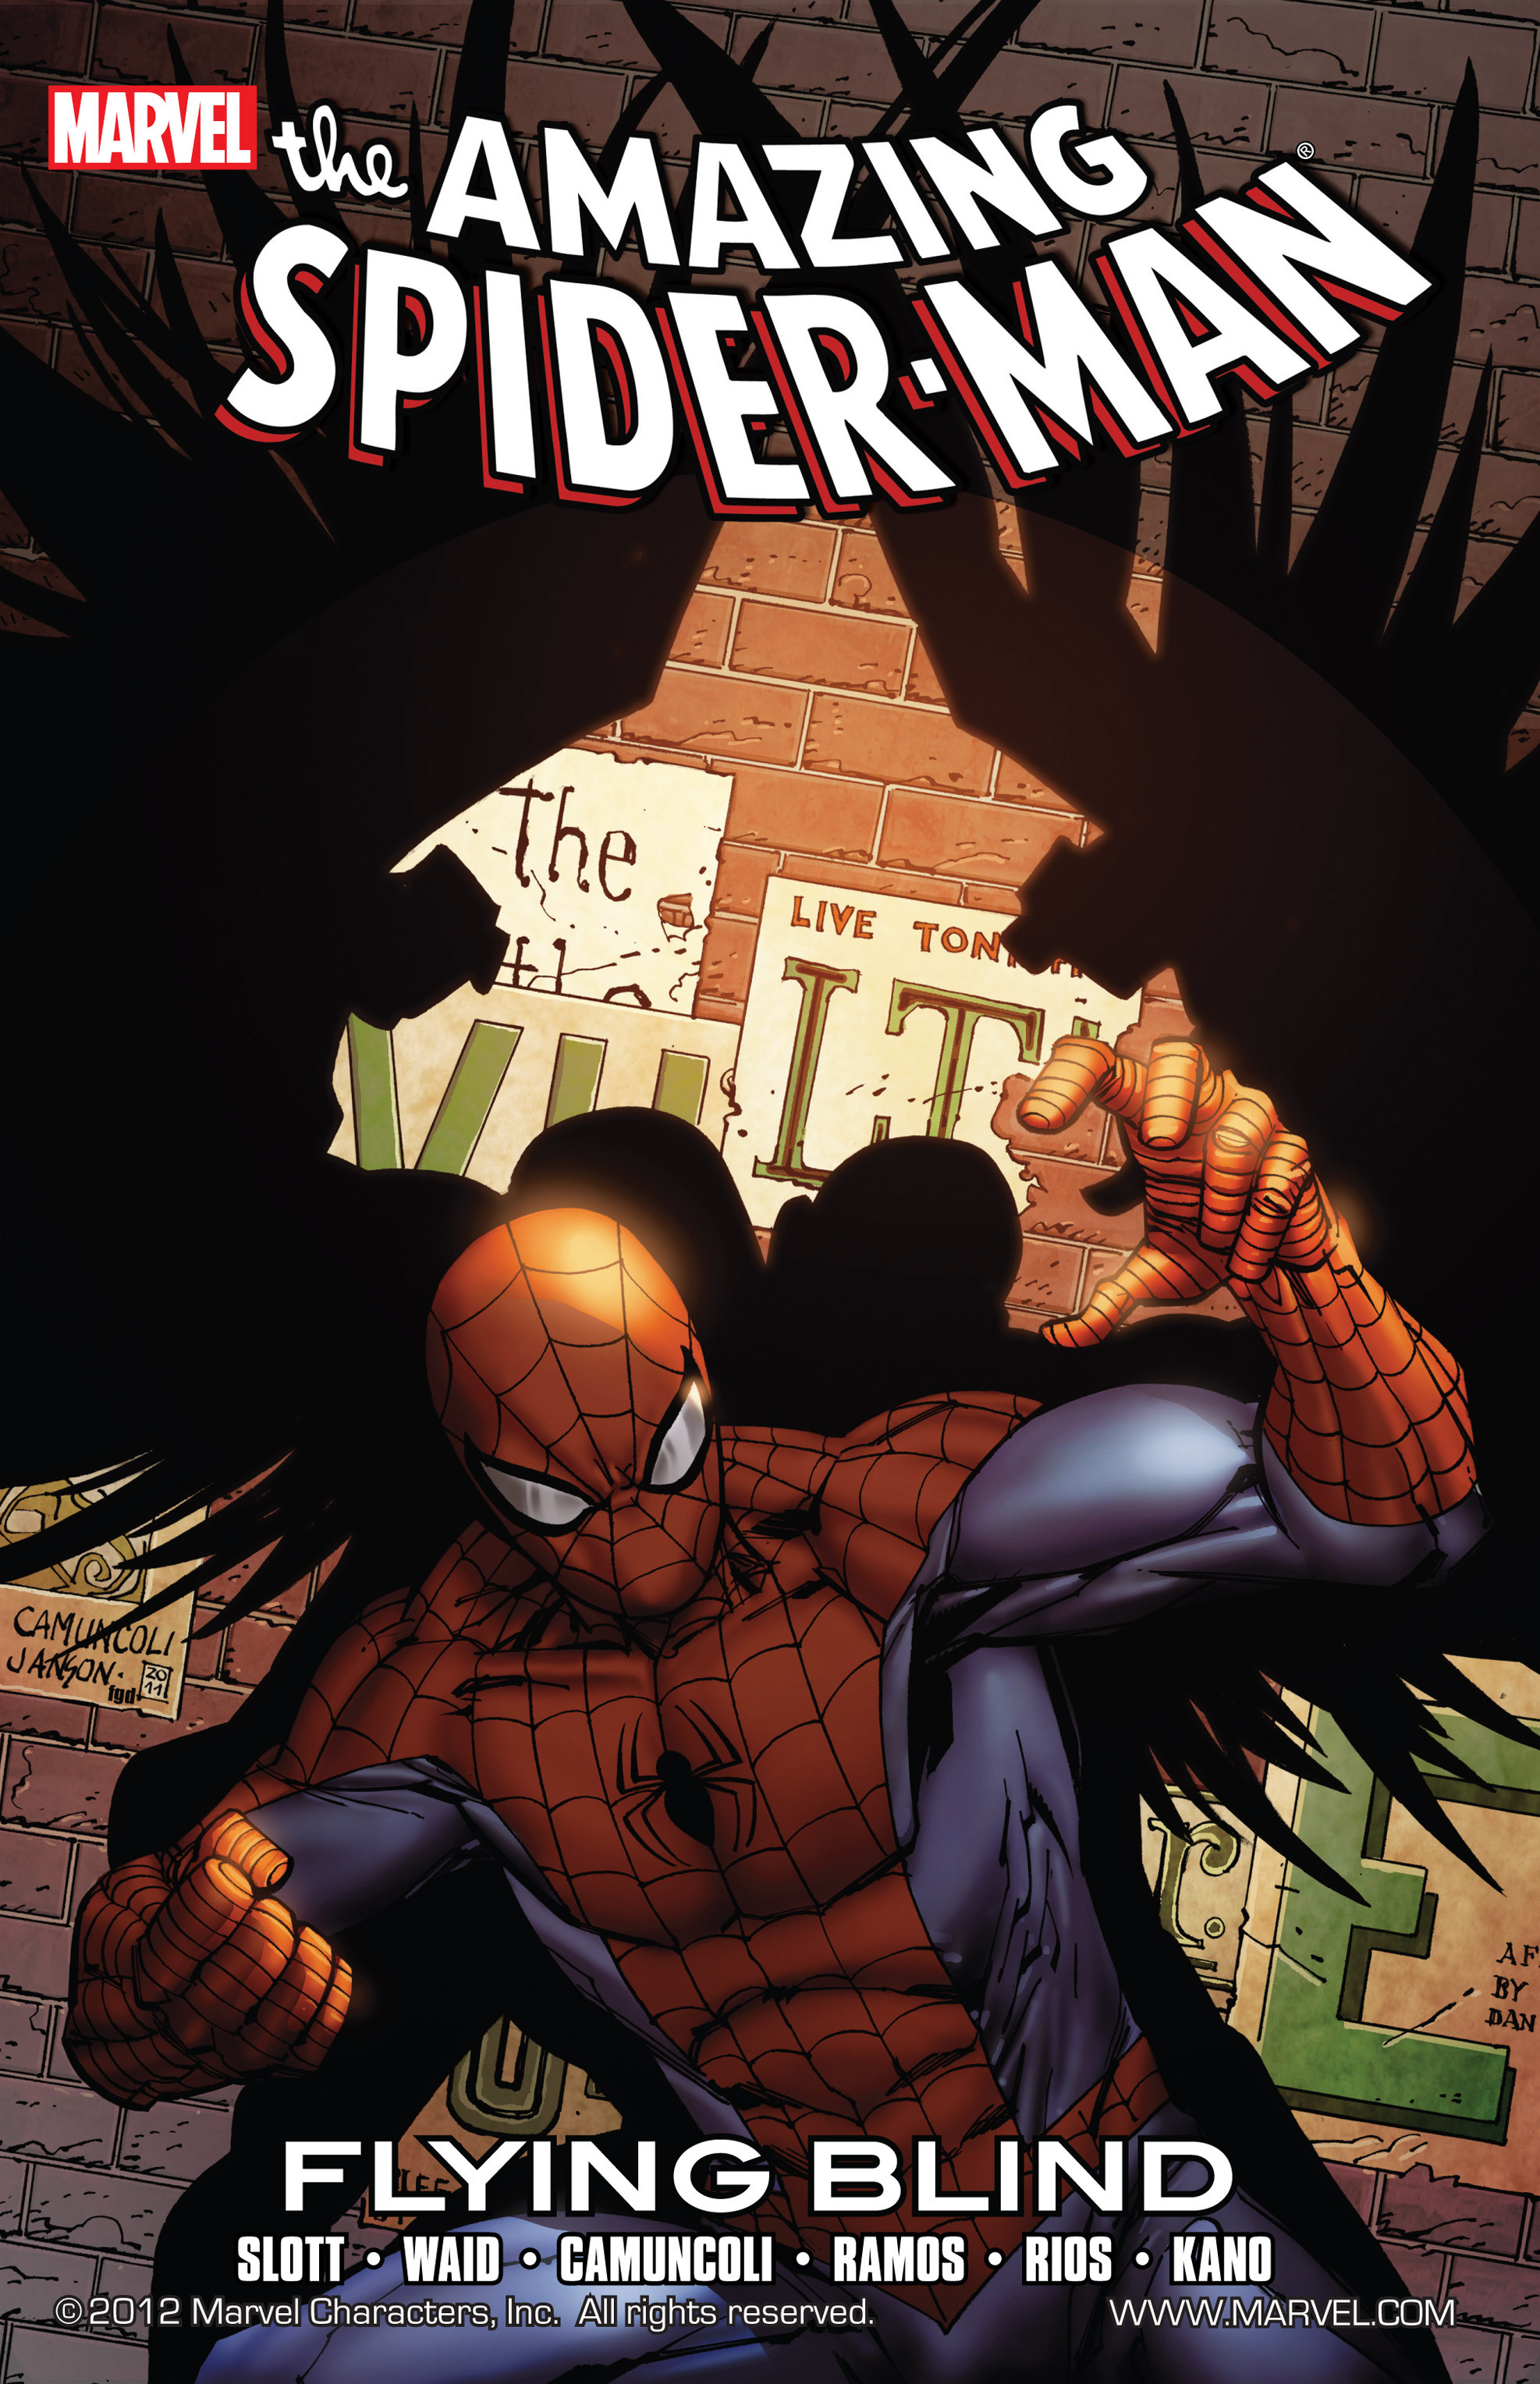 Spider-Man - Flying Blind #1